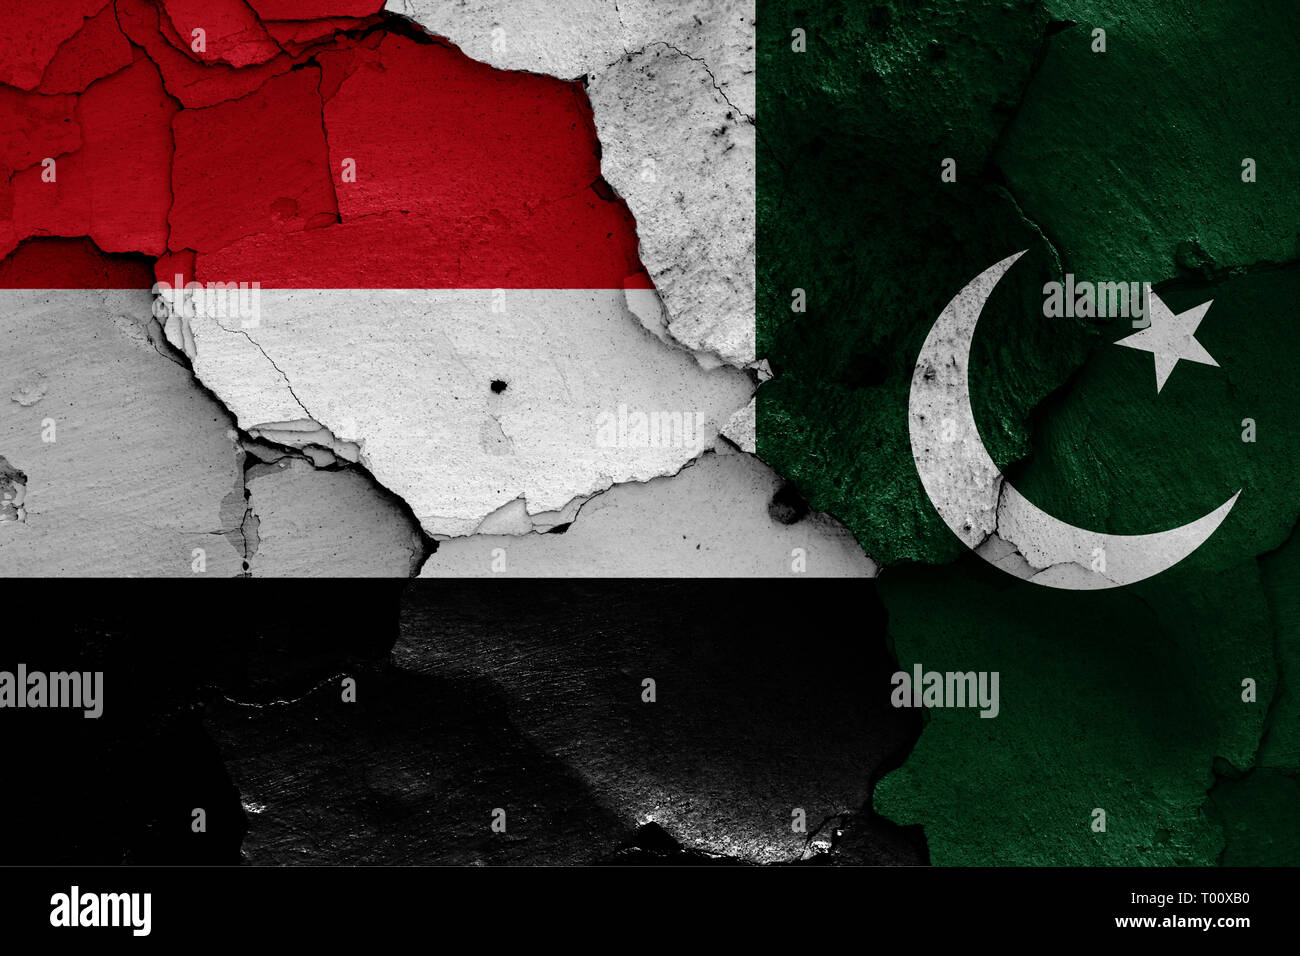 flags of Yemen and Pakistan painted on cracked wall - Stock Image